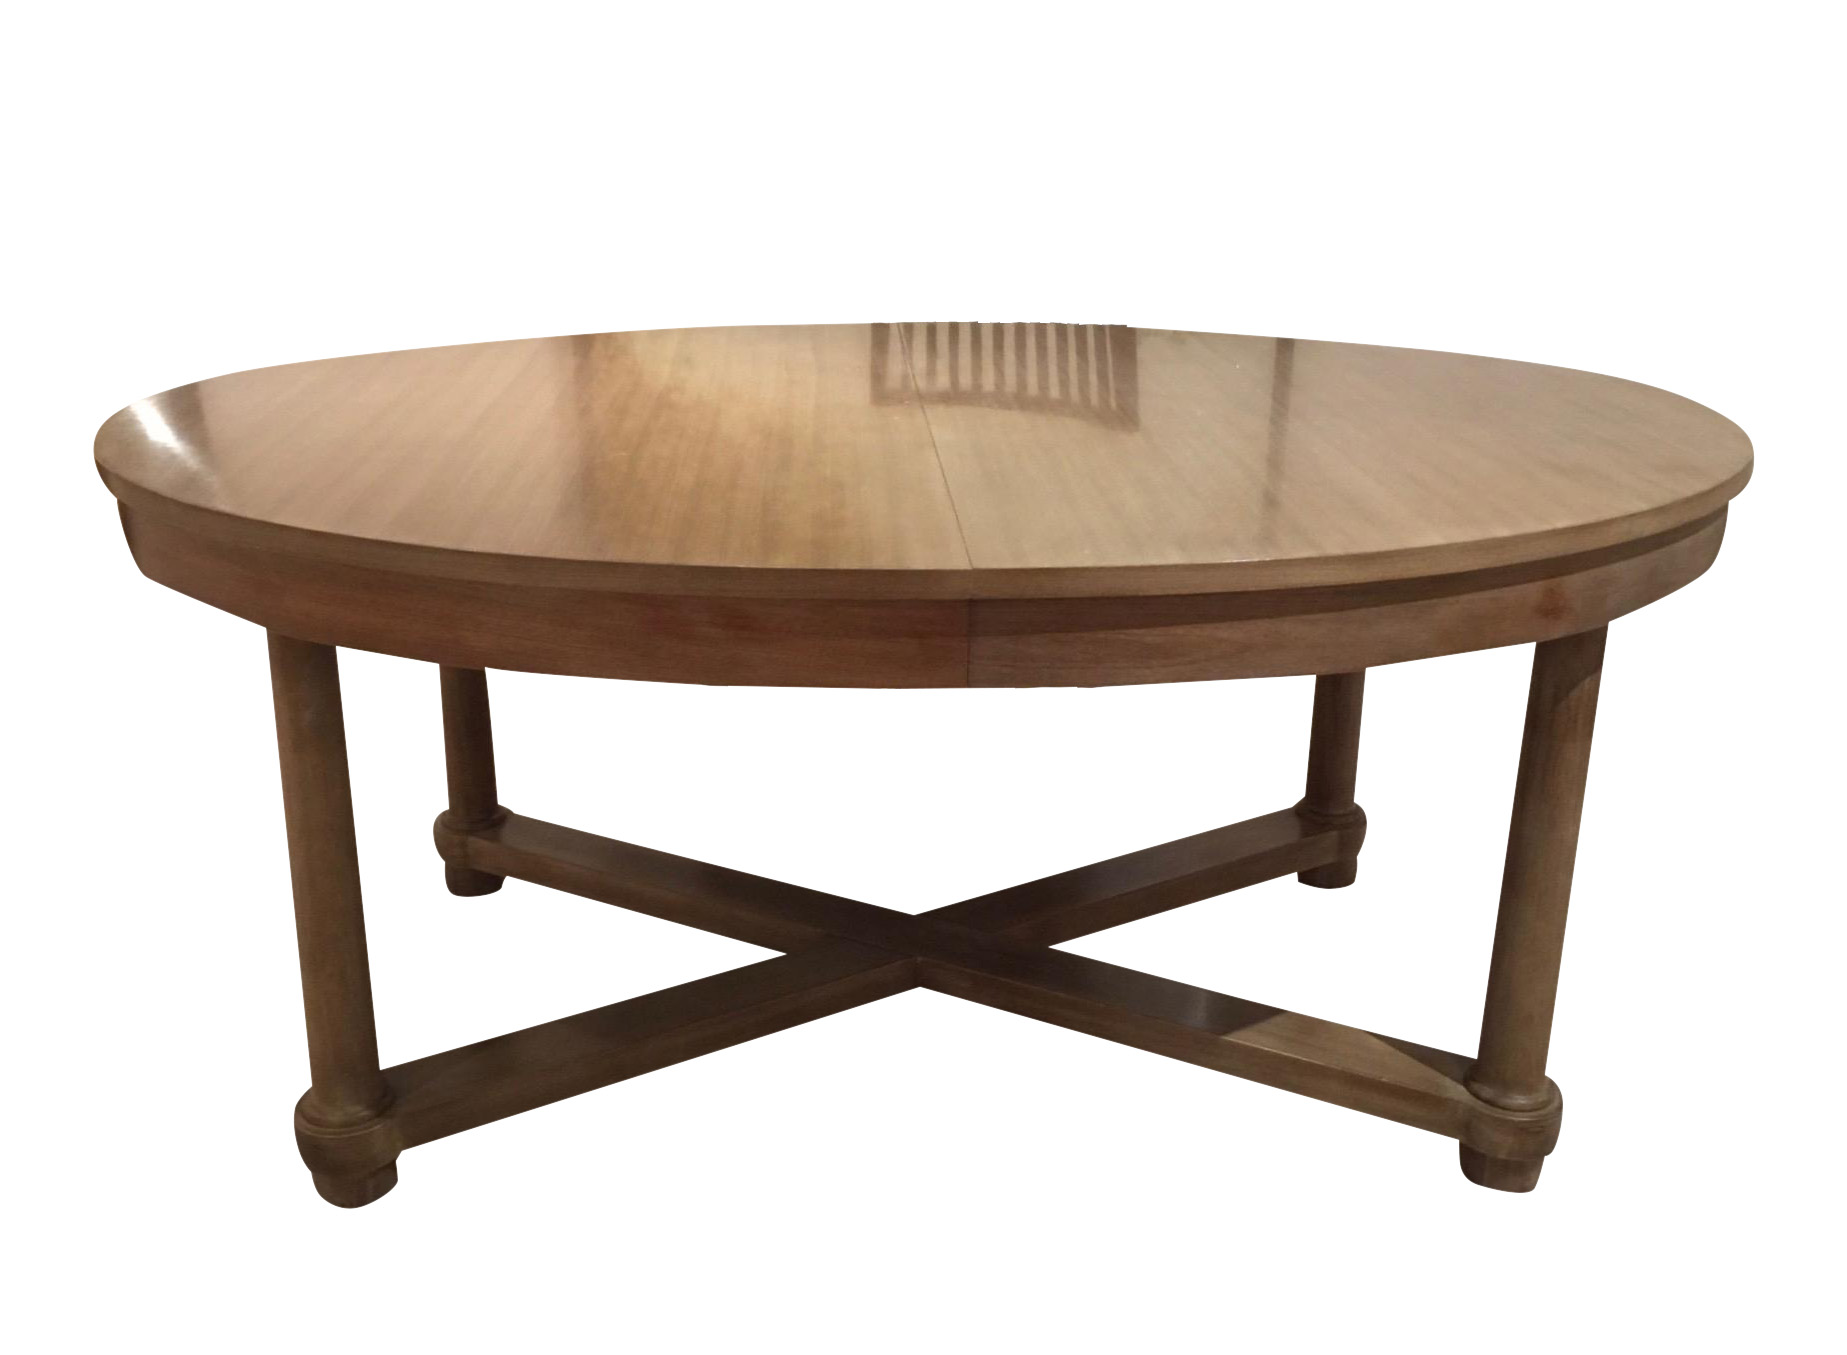 Barbara barry for baker oval dining table chairish Baker coffee table